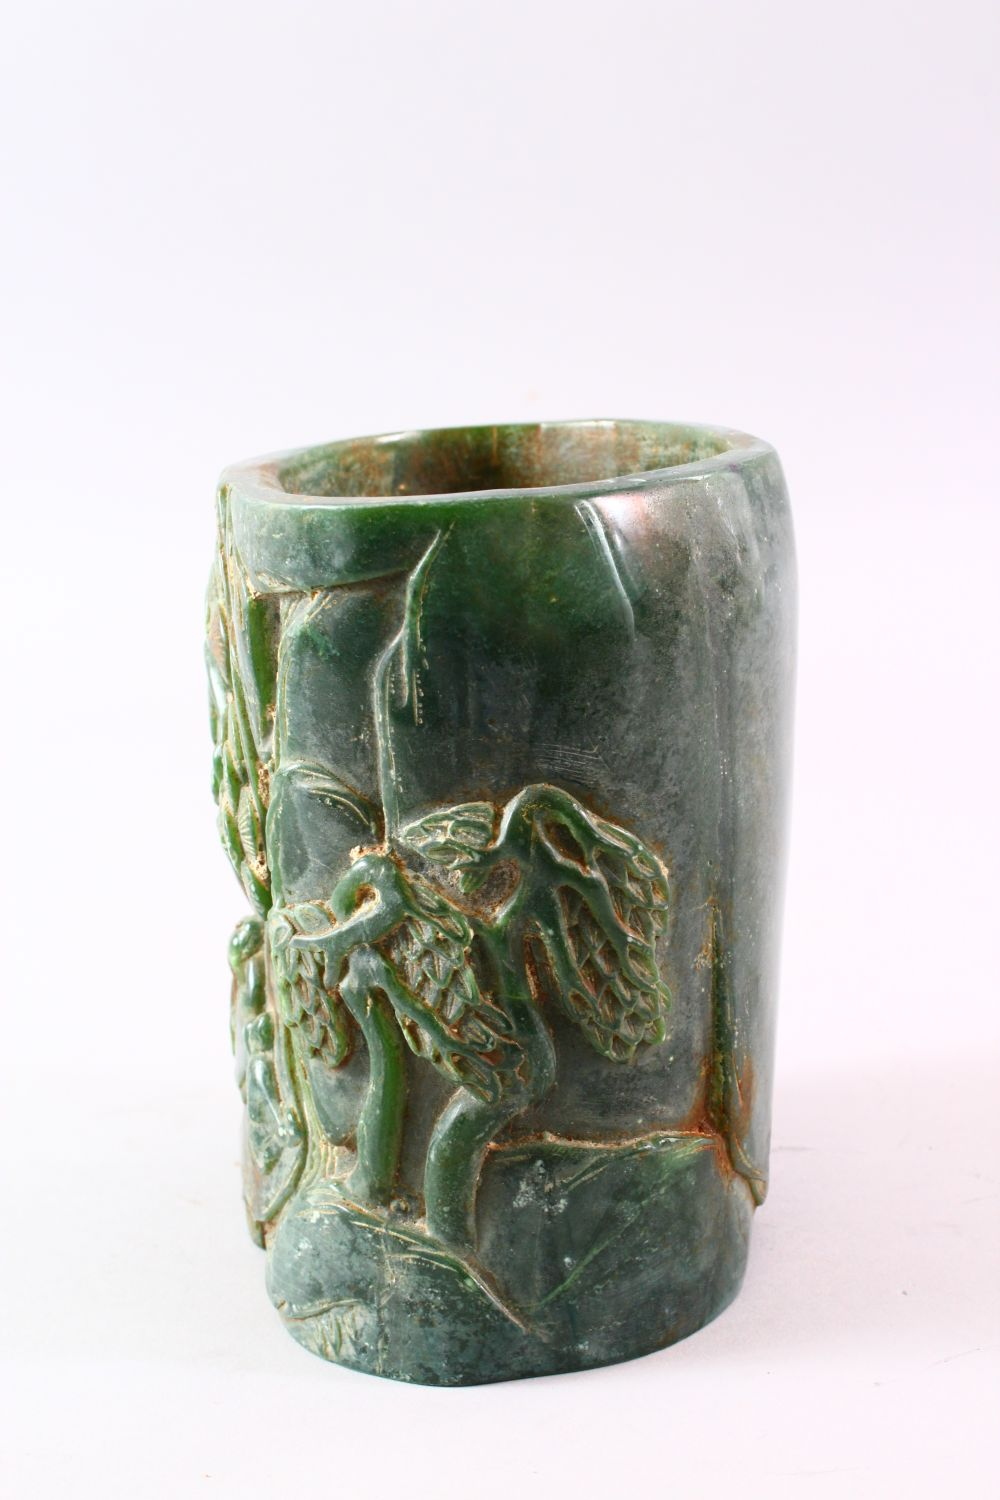 A CHINESE GREEN HARDSTONE BRUSH POT, carved with figures and trees, calligraphy, 15.5cm high. - Image 4 of 7